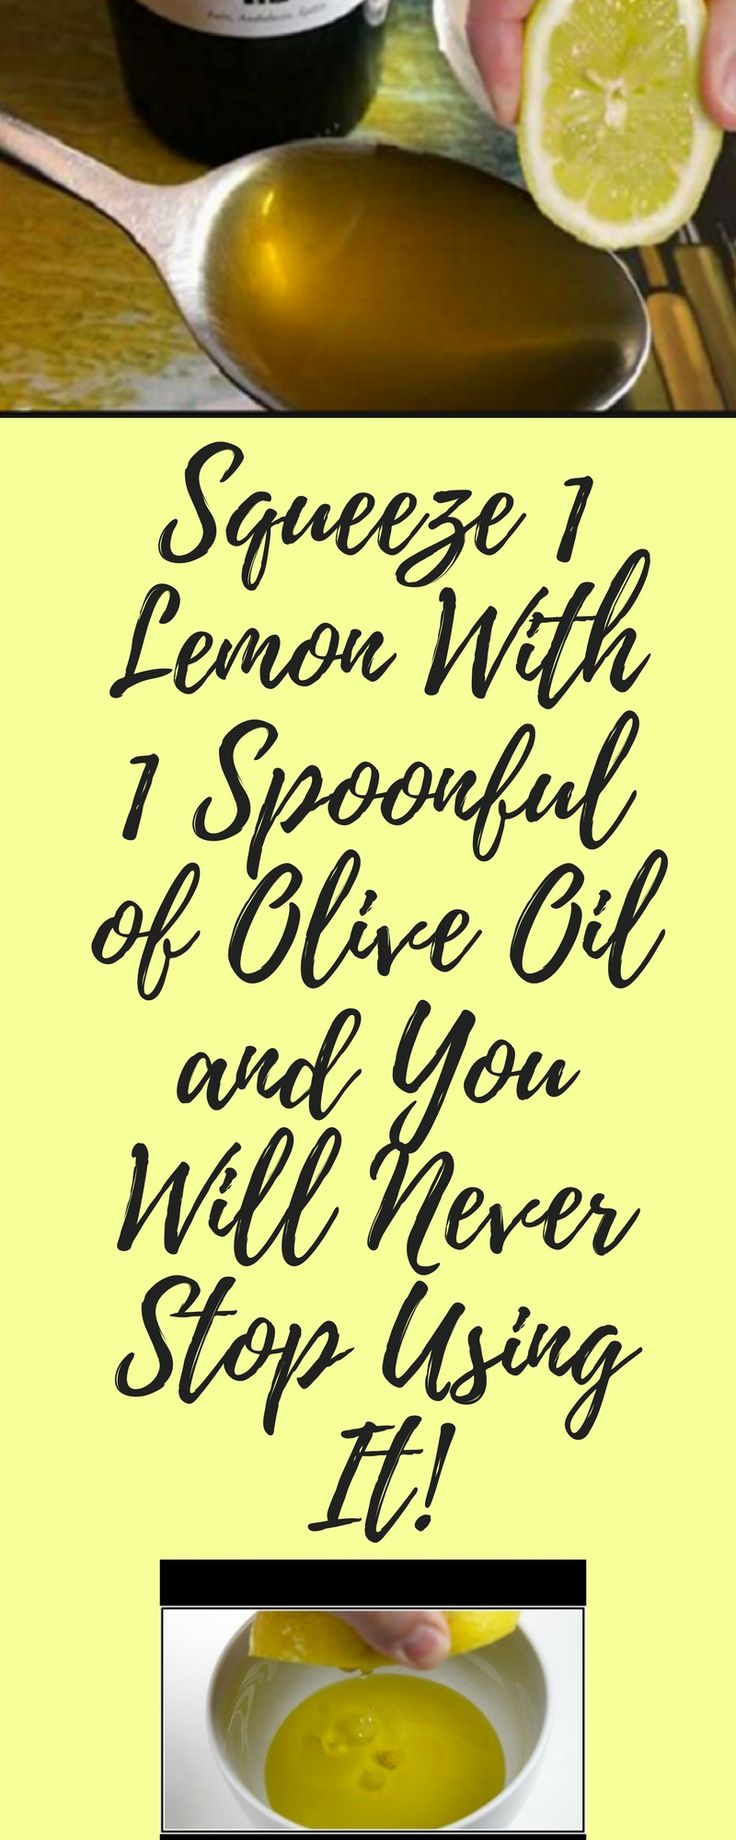 Lemon and olive oil remedy.....